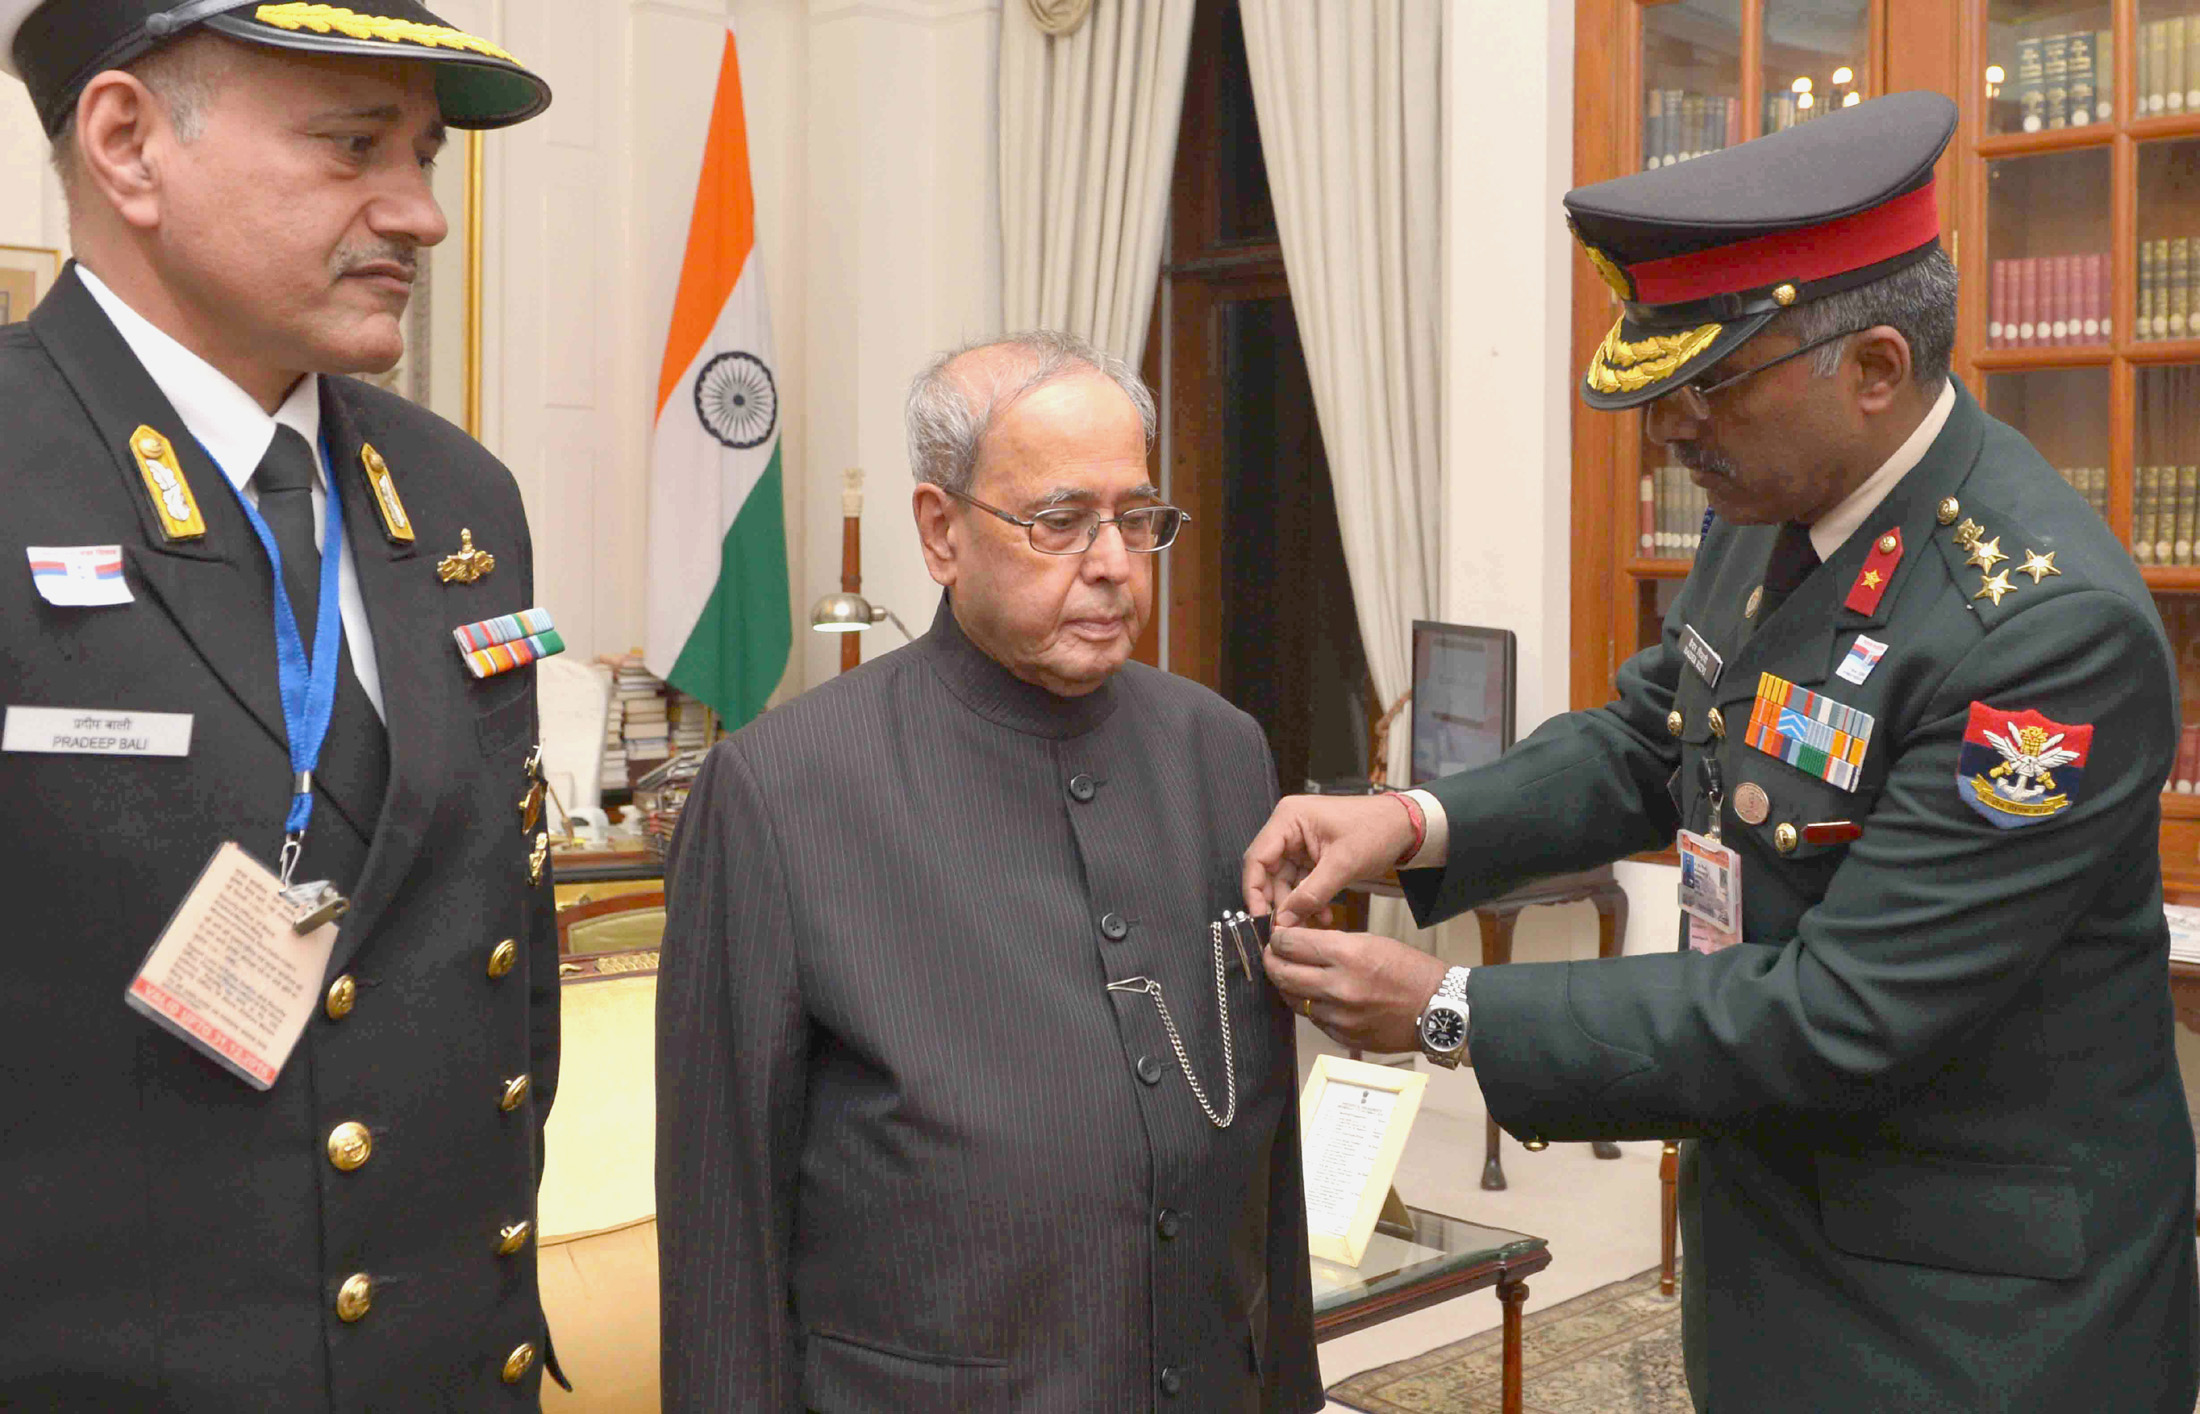 The Secretary, Kendriya Sainik Board,  pinning a lapel on the President, Shri Pranab Mukherjee, on the occasion of the Armed Forces Flag Day, at Rashtrapati Bhavan, in New Delhi on December 07, 2016.